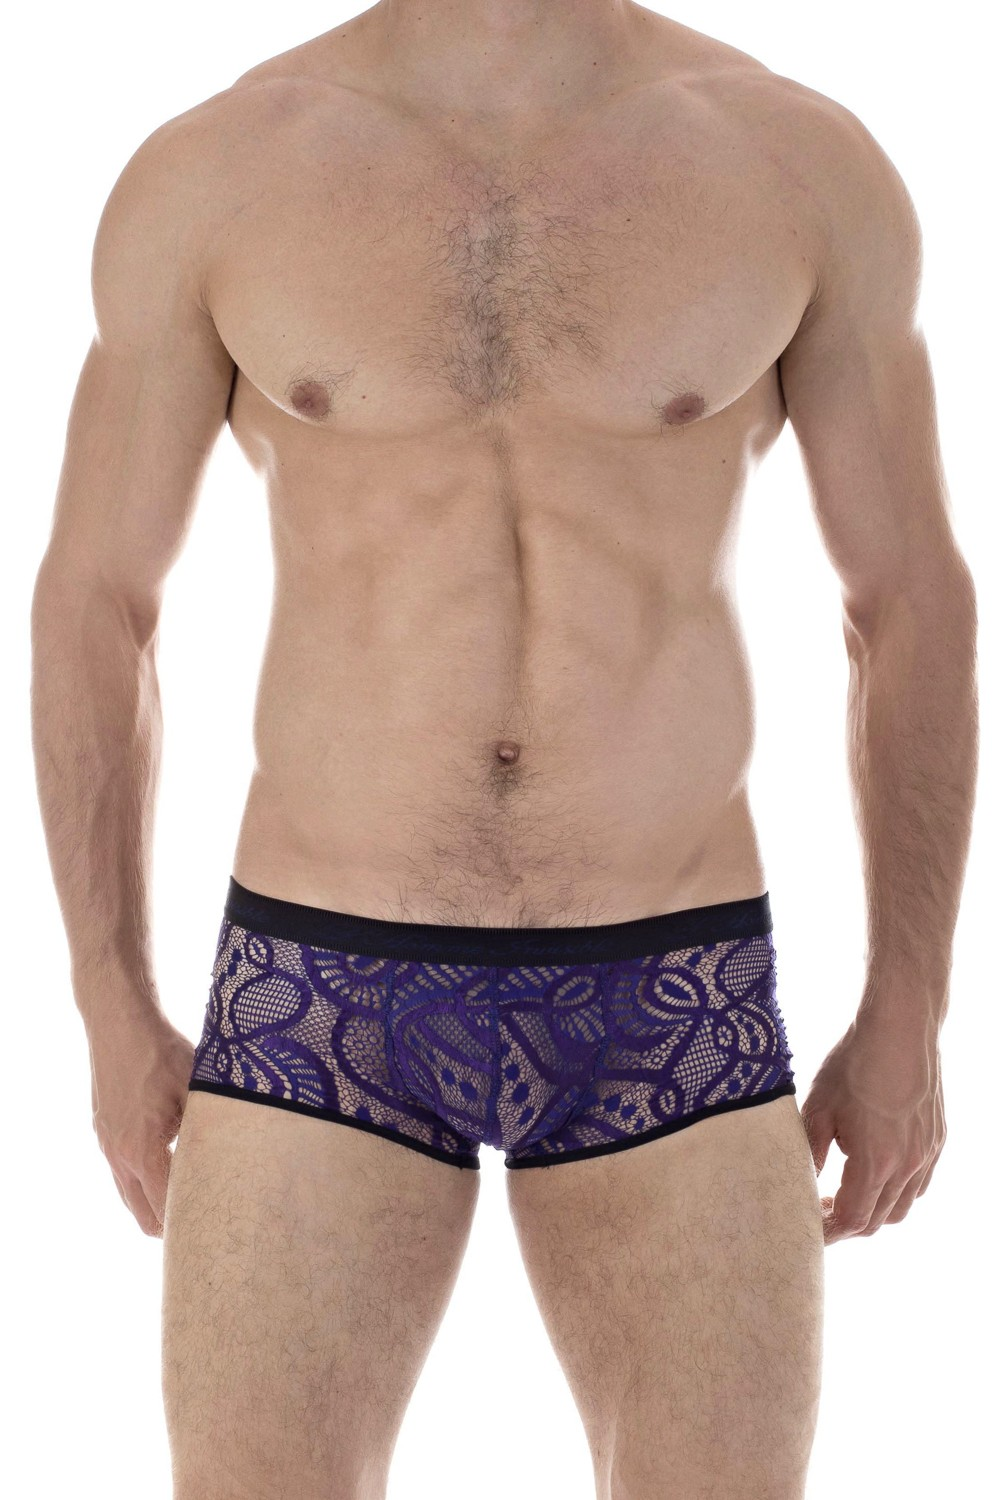 3 Pieces Men's Lace Low Rise Brief Underwear,T-Back /& See Through